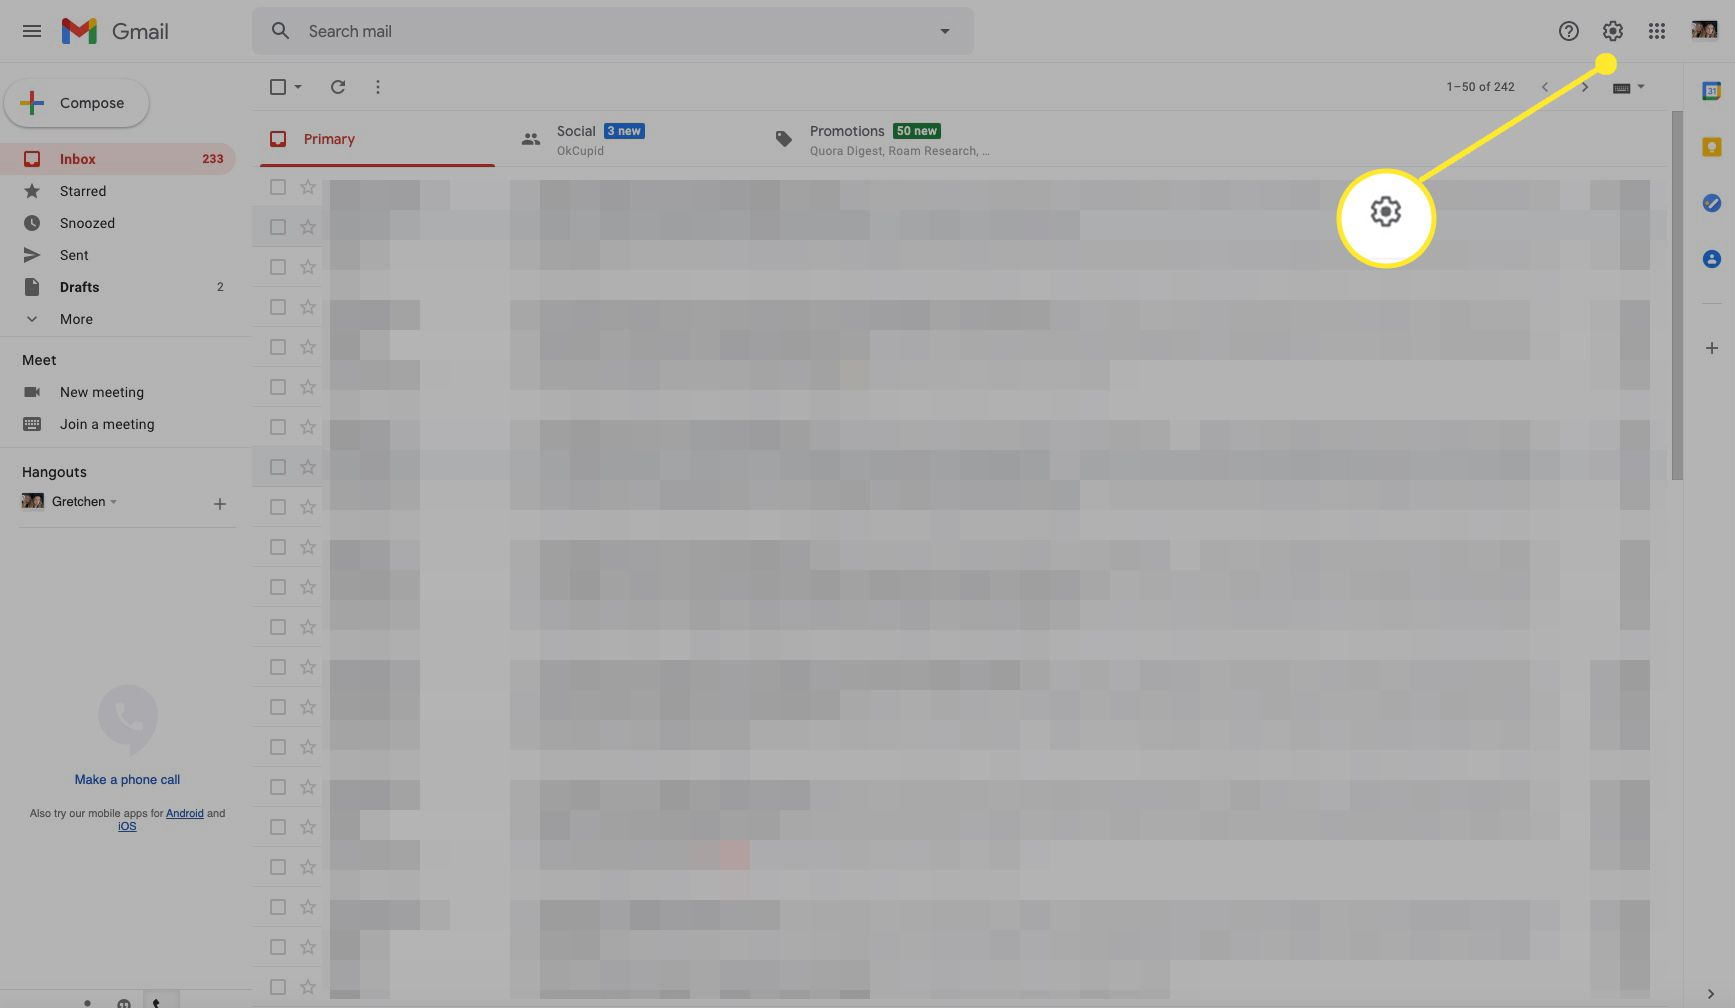 Gmail inbox screen with Settings (gear icon) highlighted